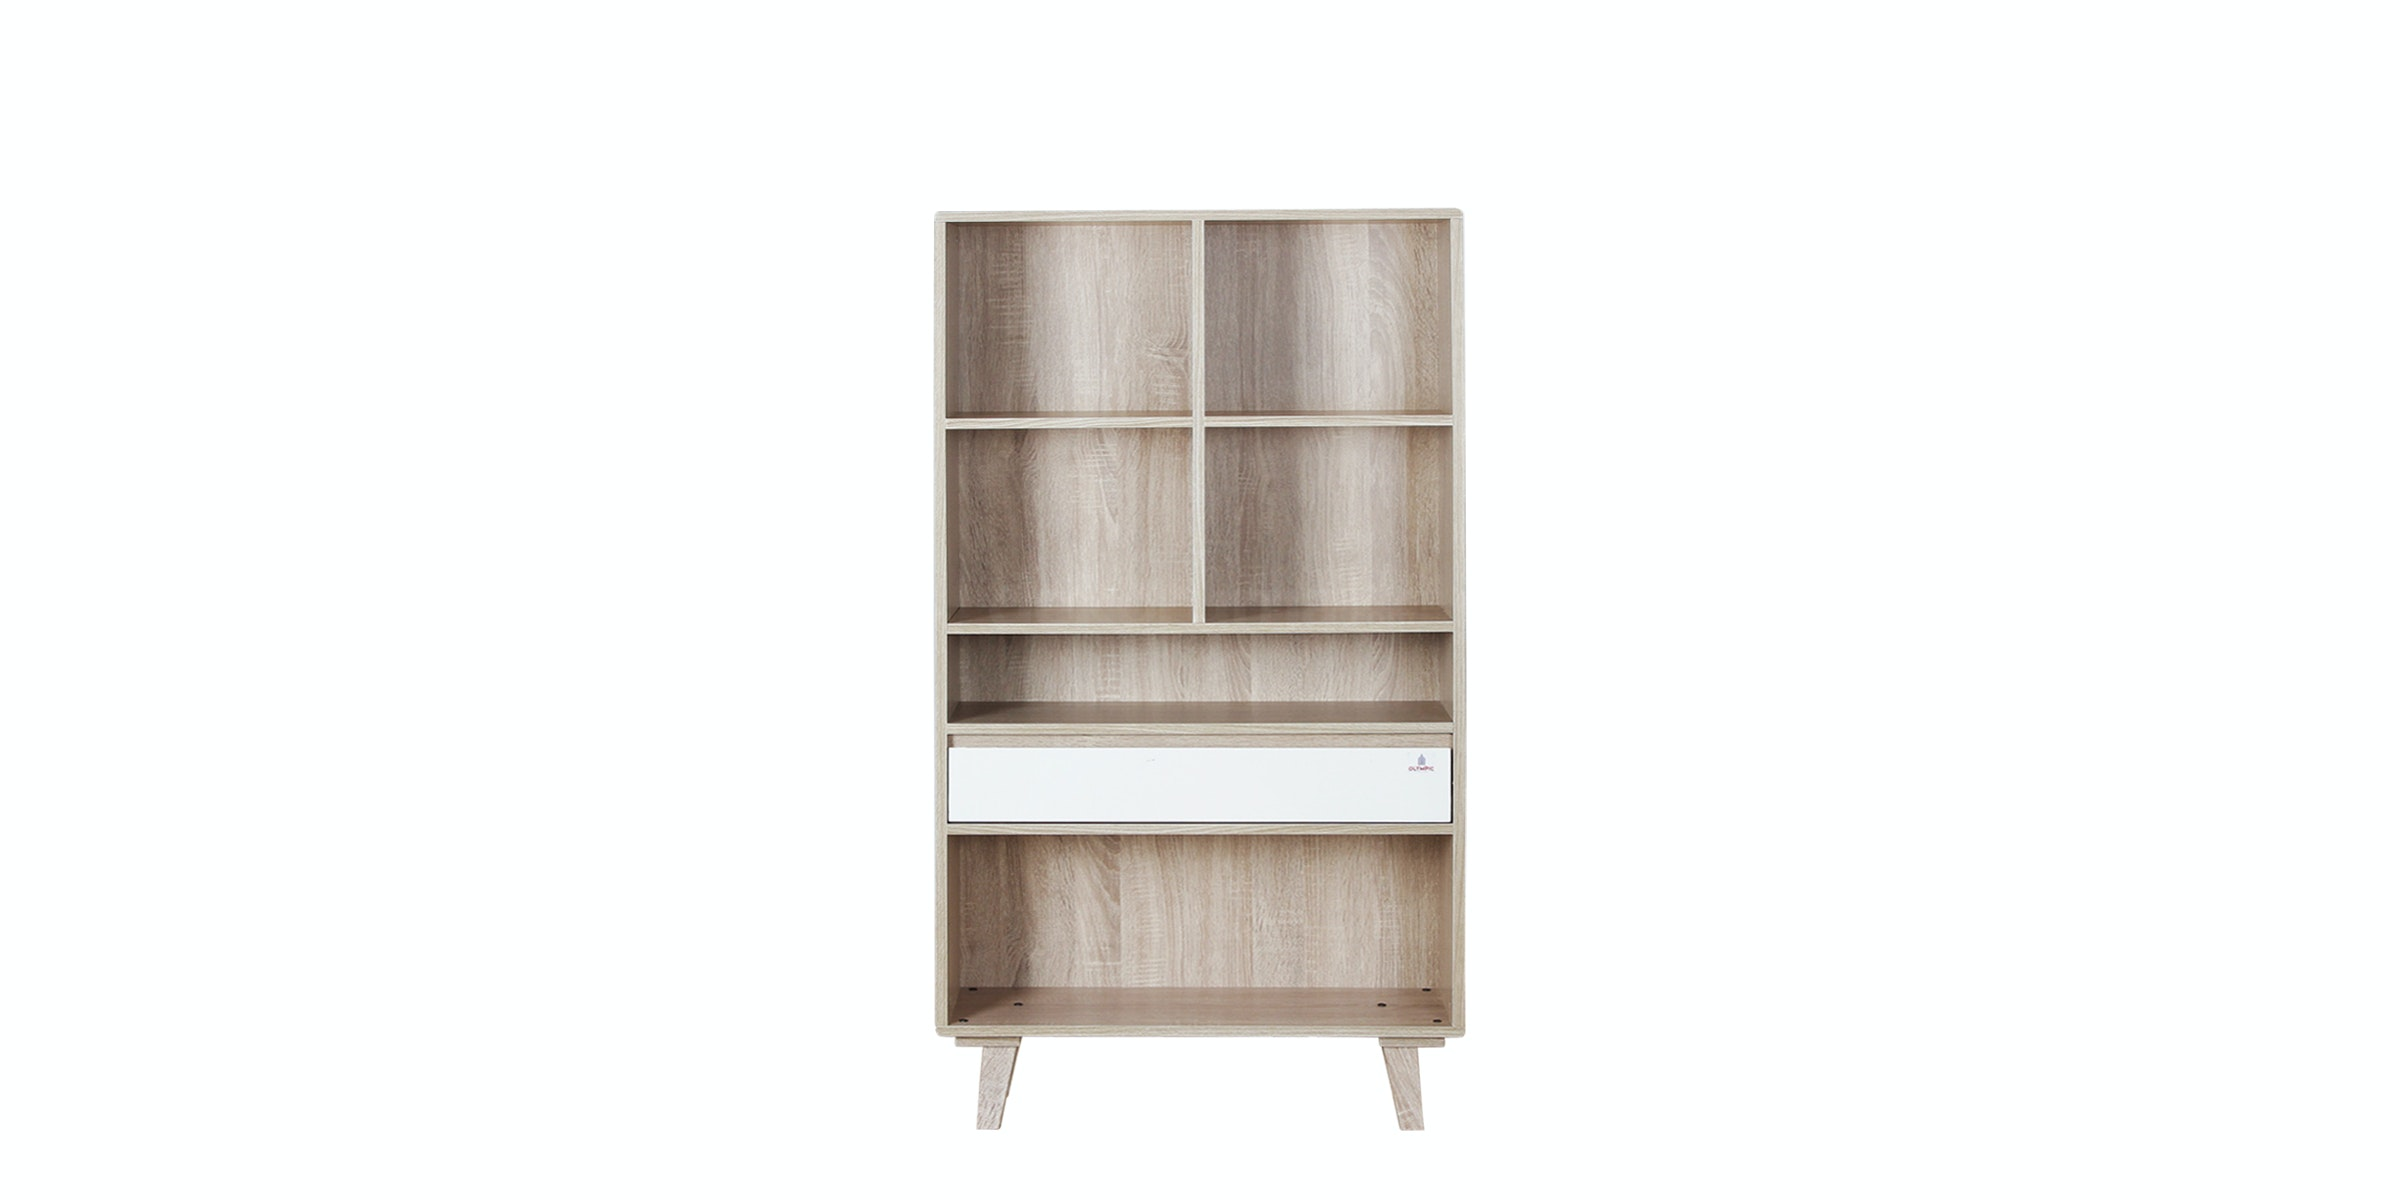 Olympic Curla Series Book Case Small-Rak Buku Besar Scandinavian Style